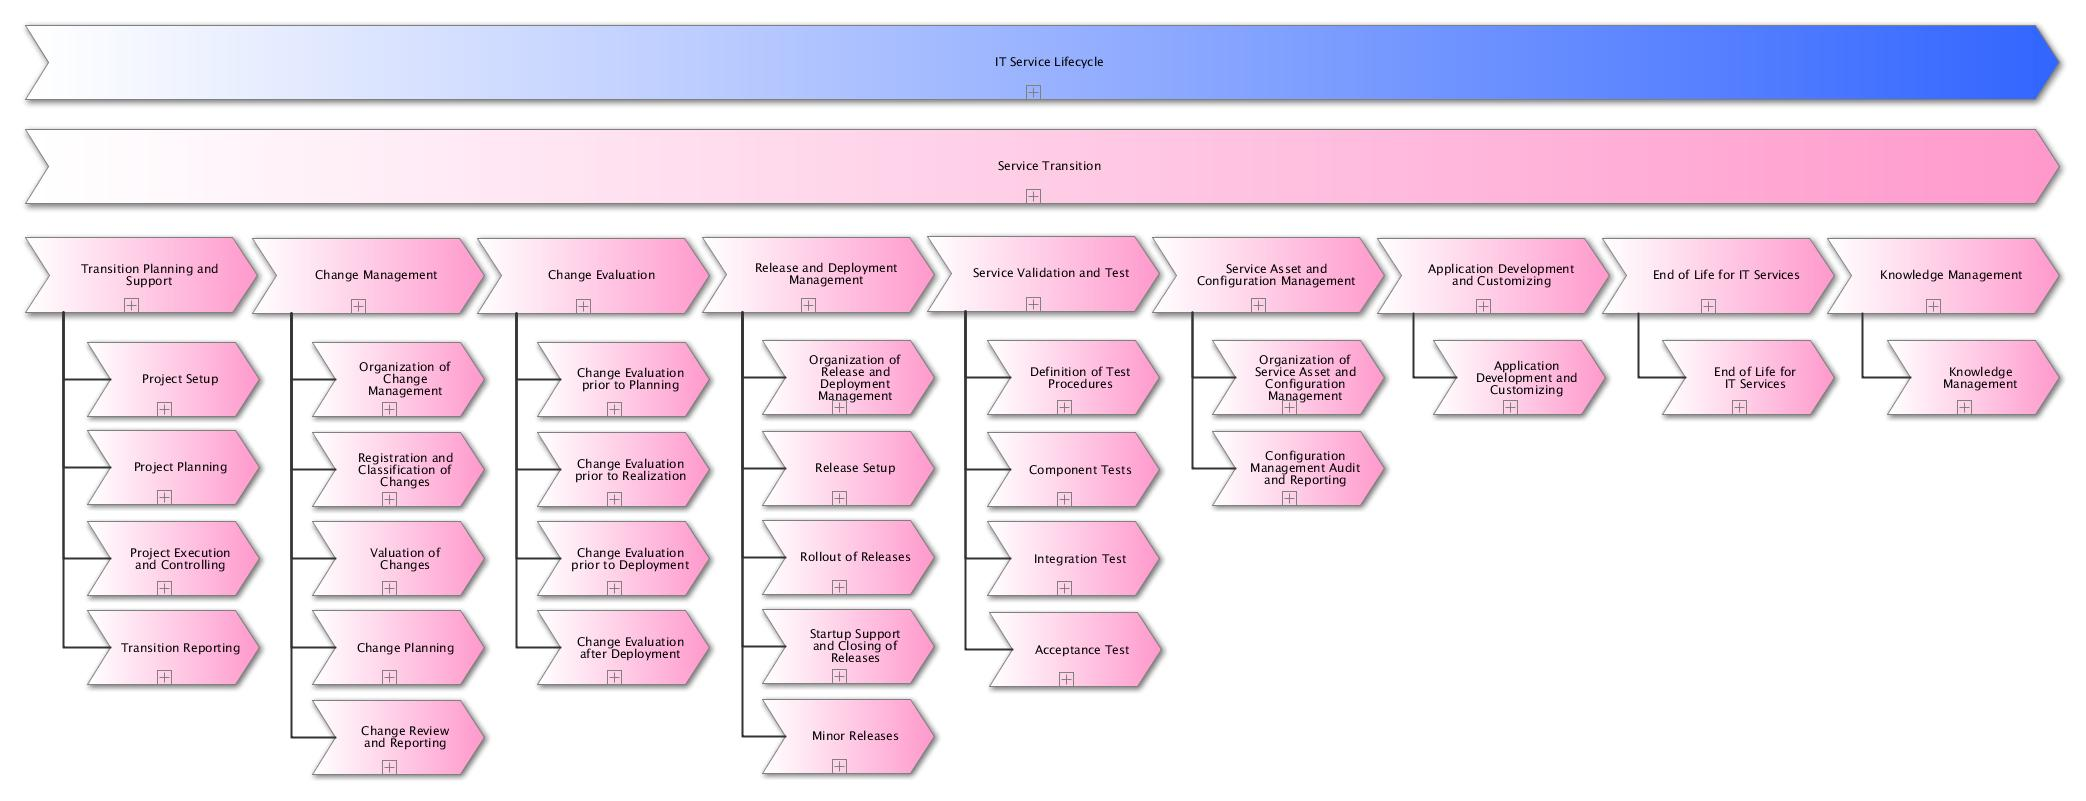 Excerpt process documentation of service transition according to